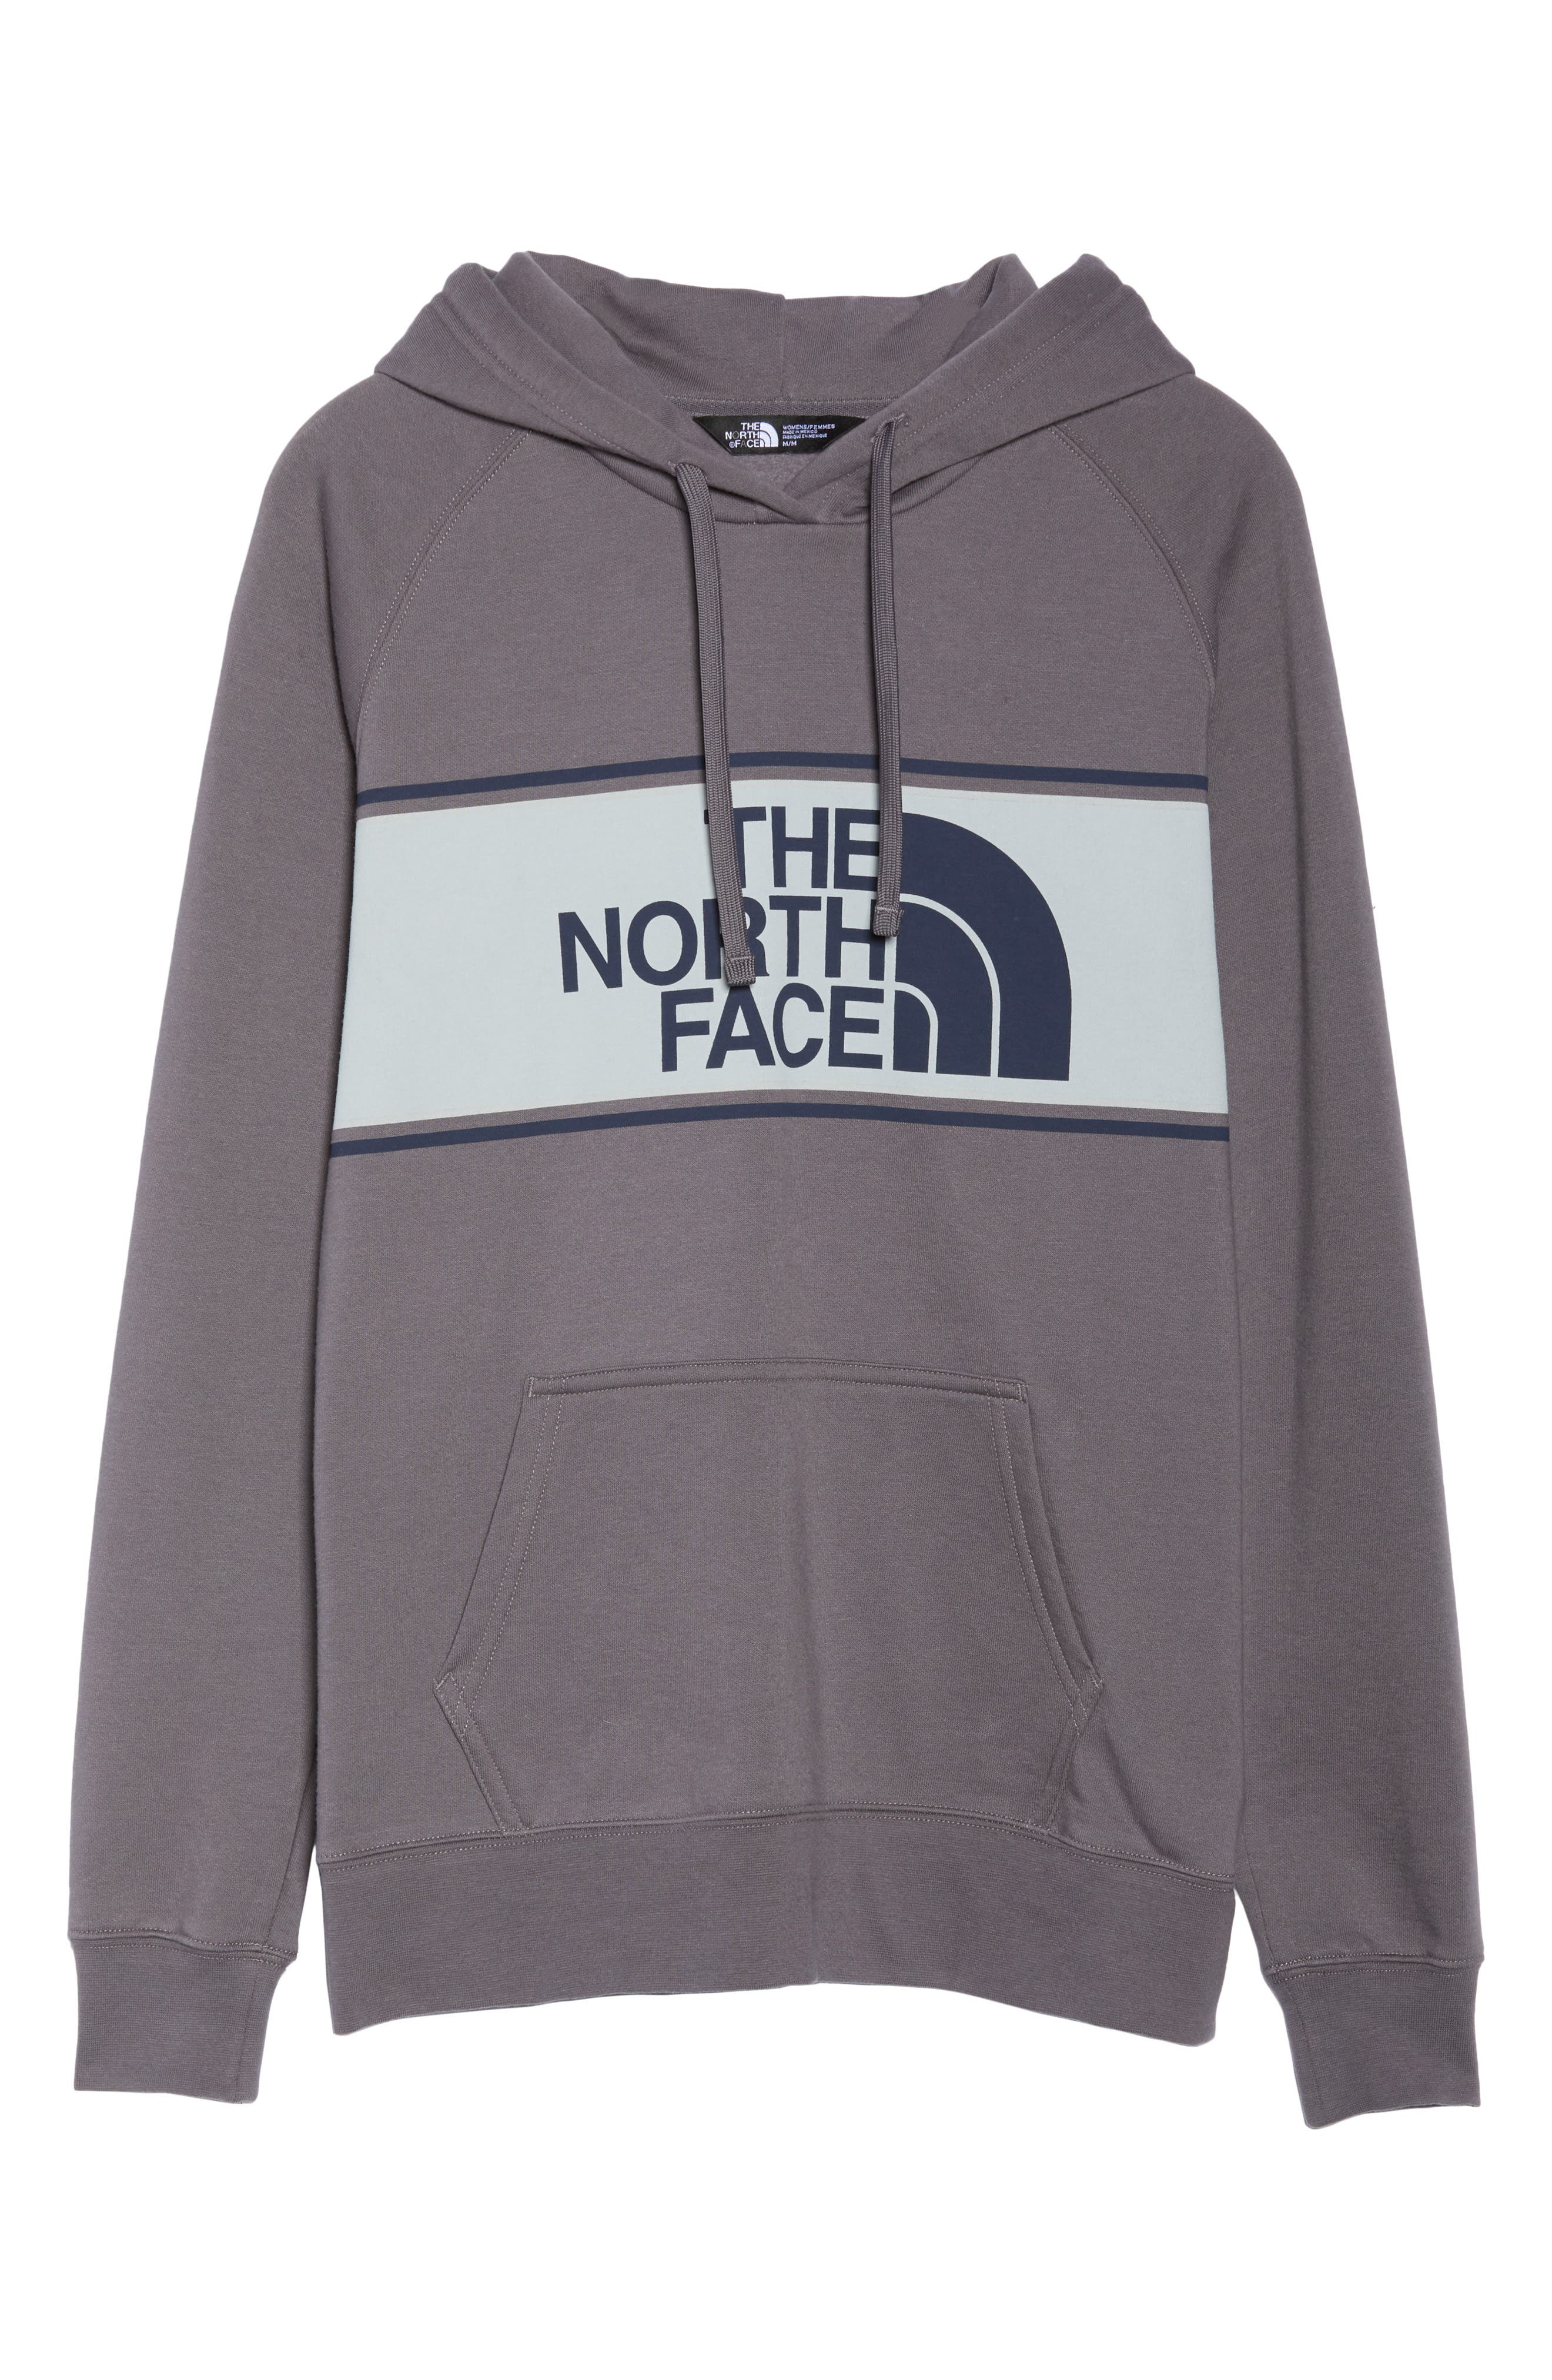 THE NORTH FACE,                             Edge to Edge Logo Hoodie Sweatshirt,                             Alternate thumbnail 7, color,                             023